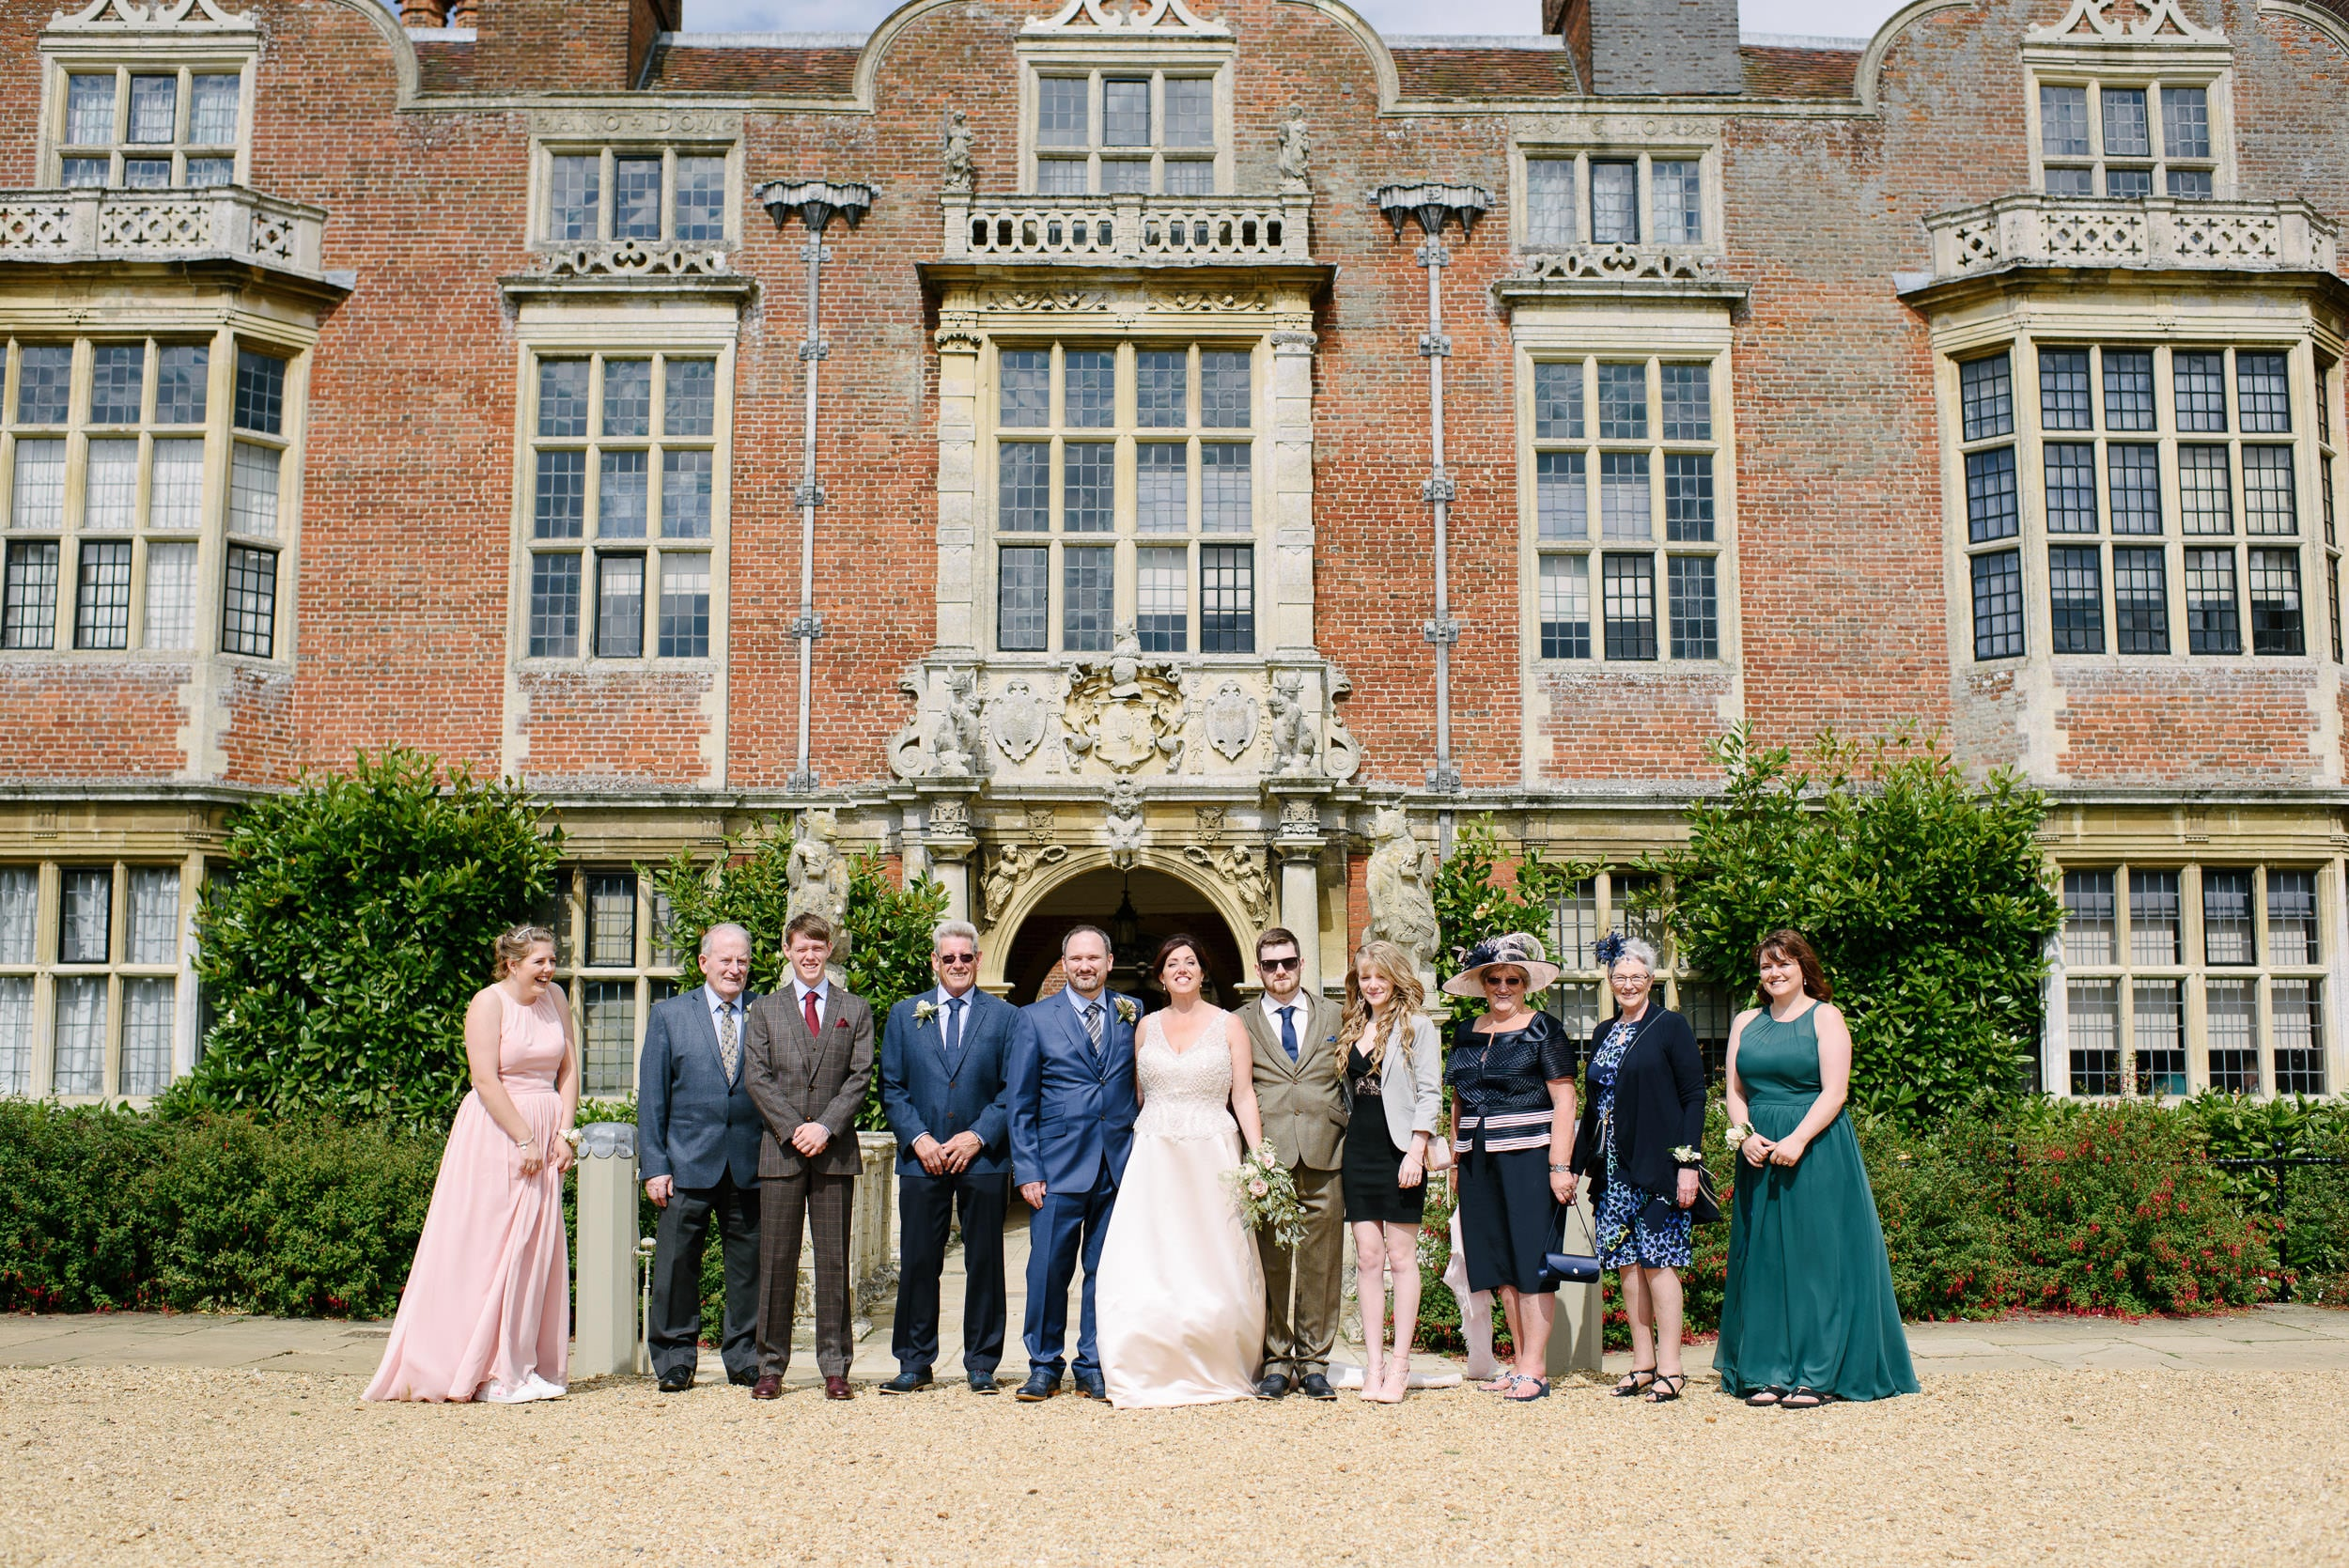 Suzy & Mike - Blickling Hall Wedding 24